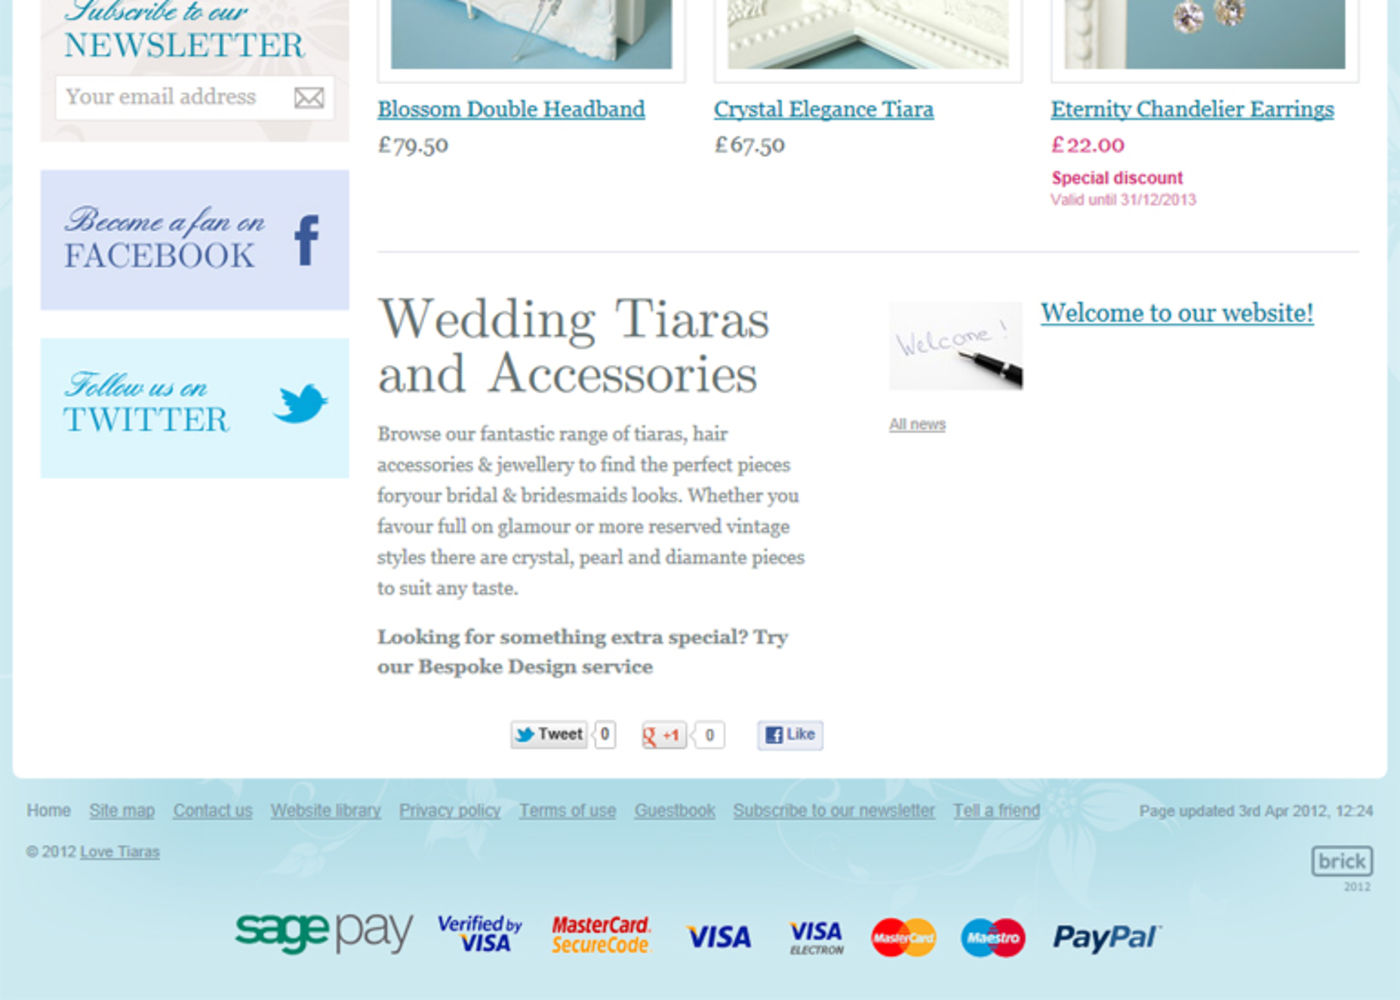 Love Tiaras Homepage footer